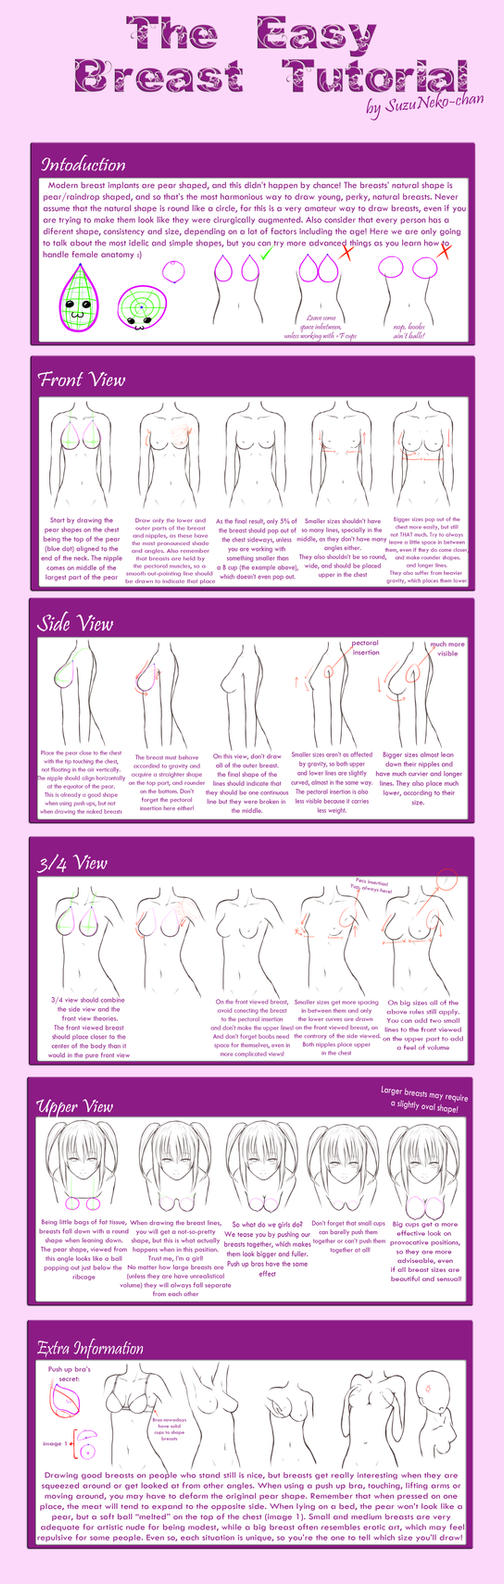 The Easy Breast Tutorial by Nuei